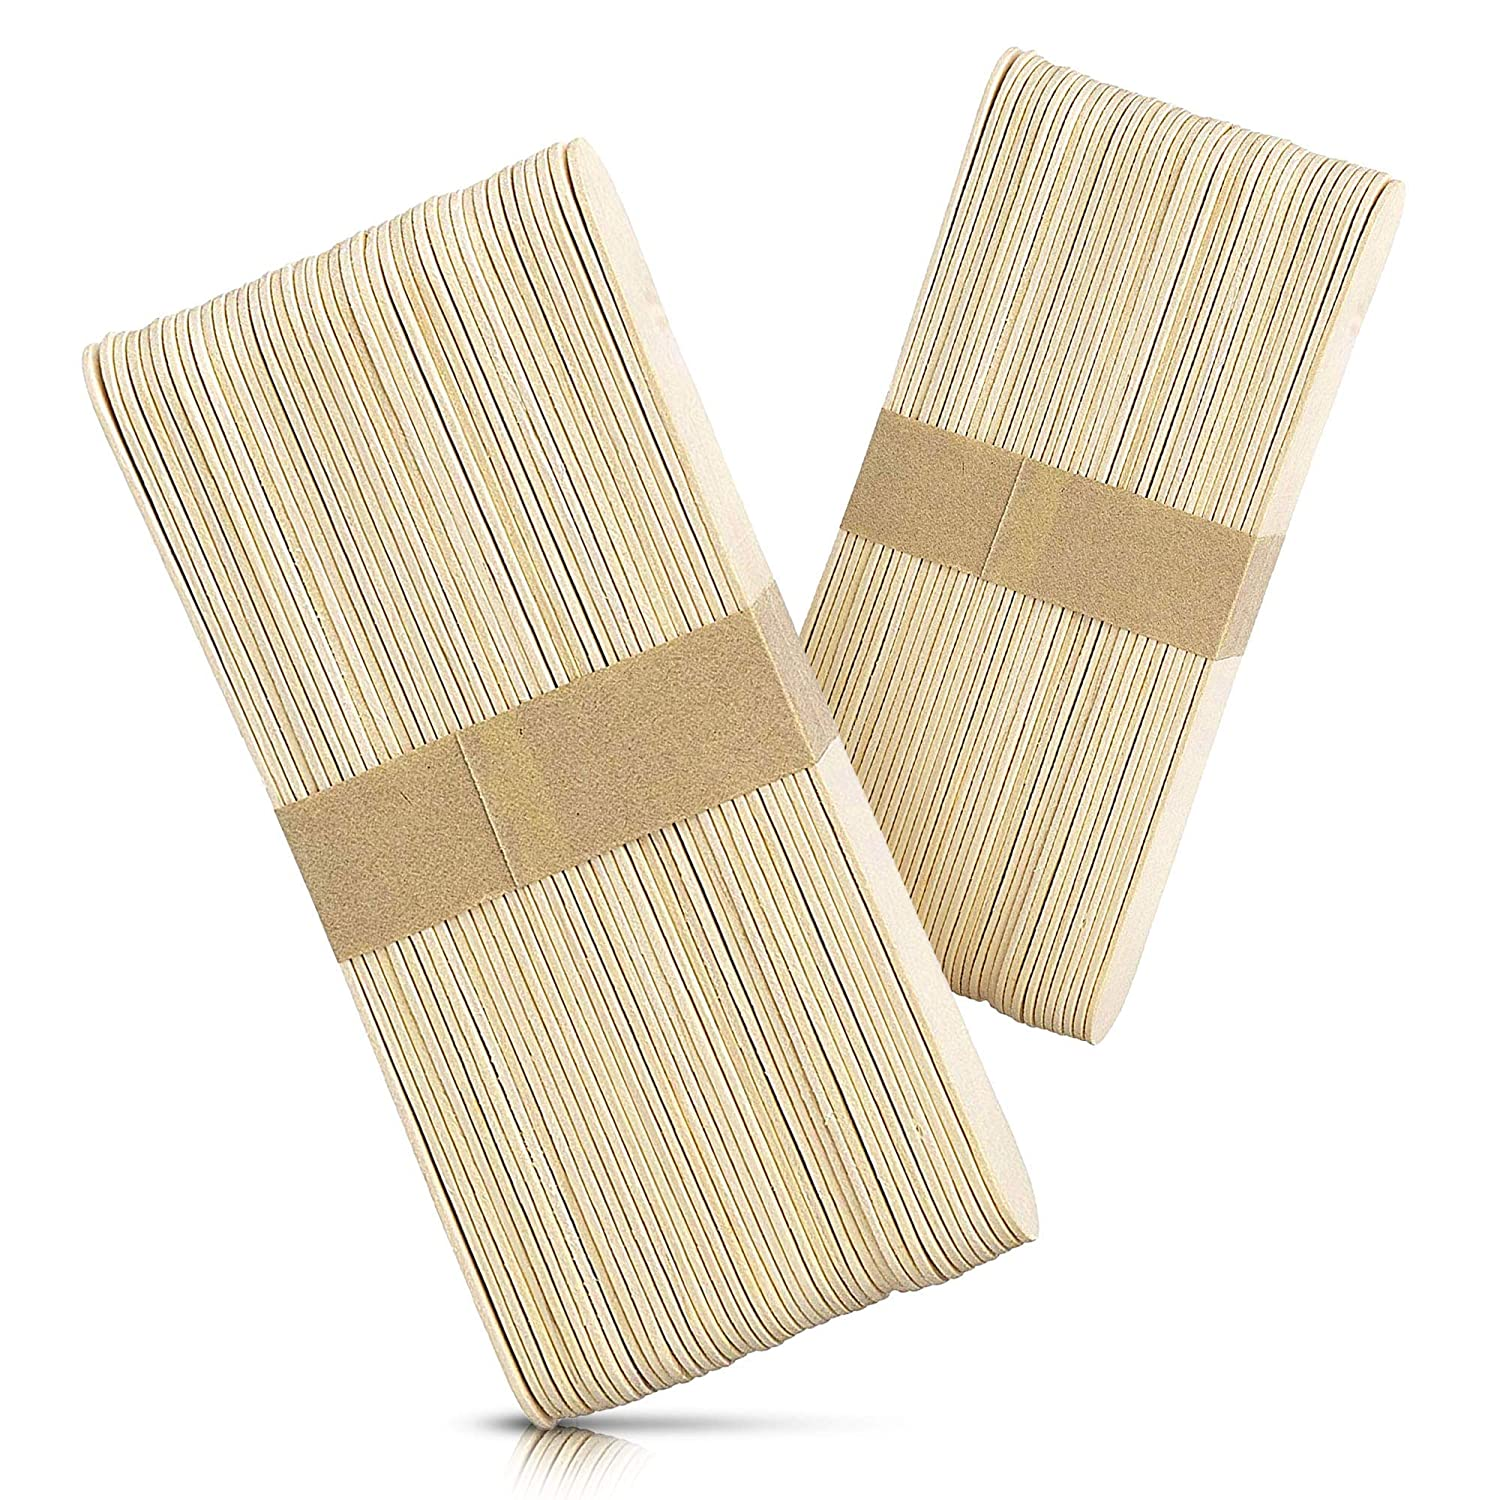 Rayson Wax Sticks 100 Pieces Large Wood Spatulas Waxing Craft Sticks Applicators for Hair Removal Eyebrow and Body